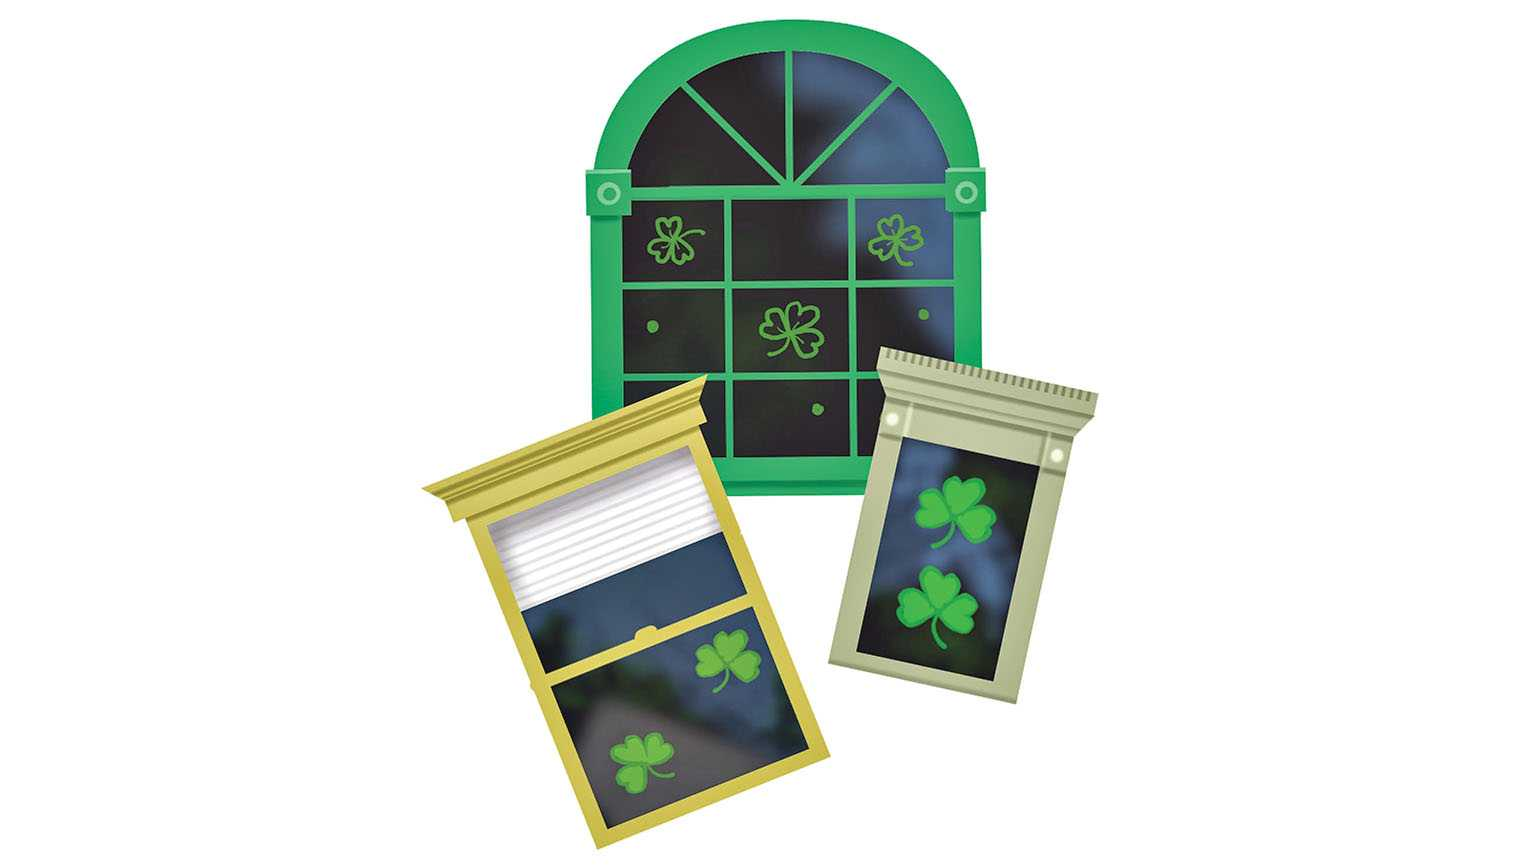 Shamrocks in various windows; Illustration by Coco Masuda